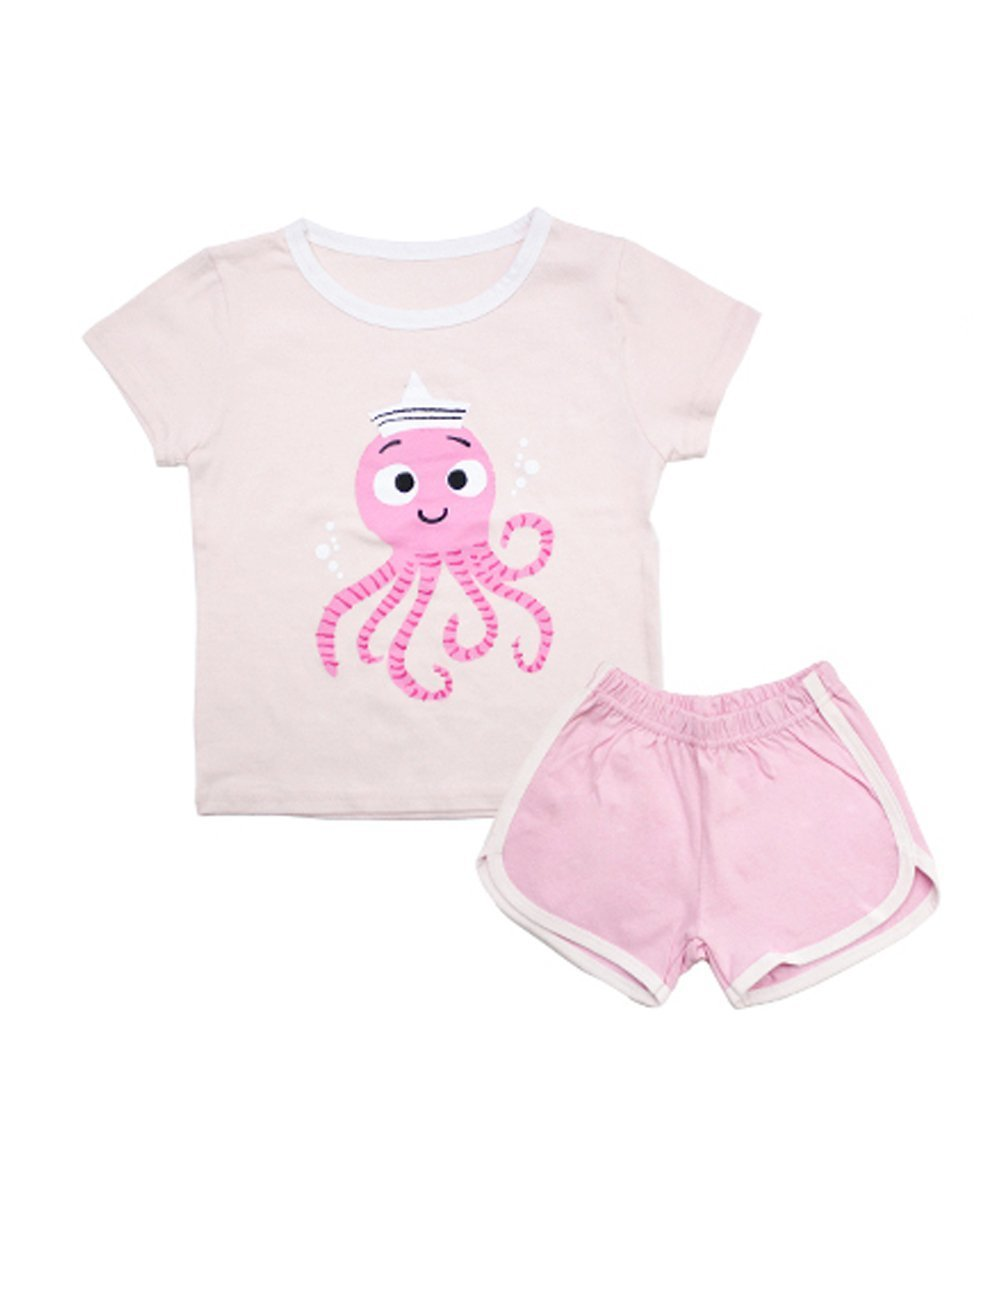 10STAR11 Girls Cute 100% Cotton Durable Colorful Patterned T-Shirt and Shorts Clothing Set S277,9